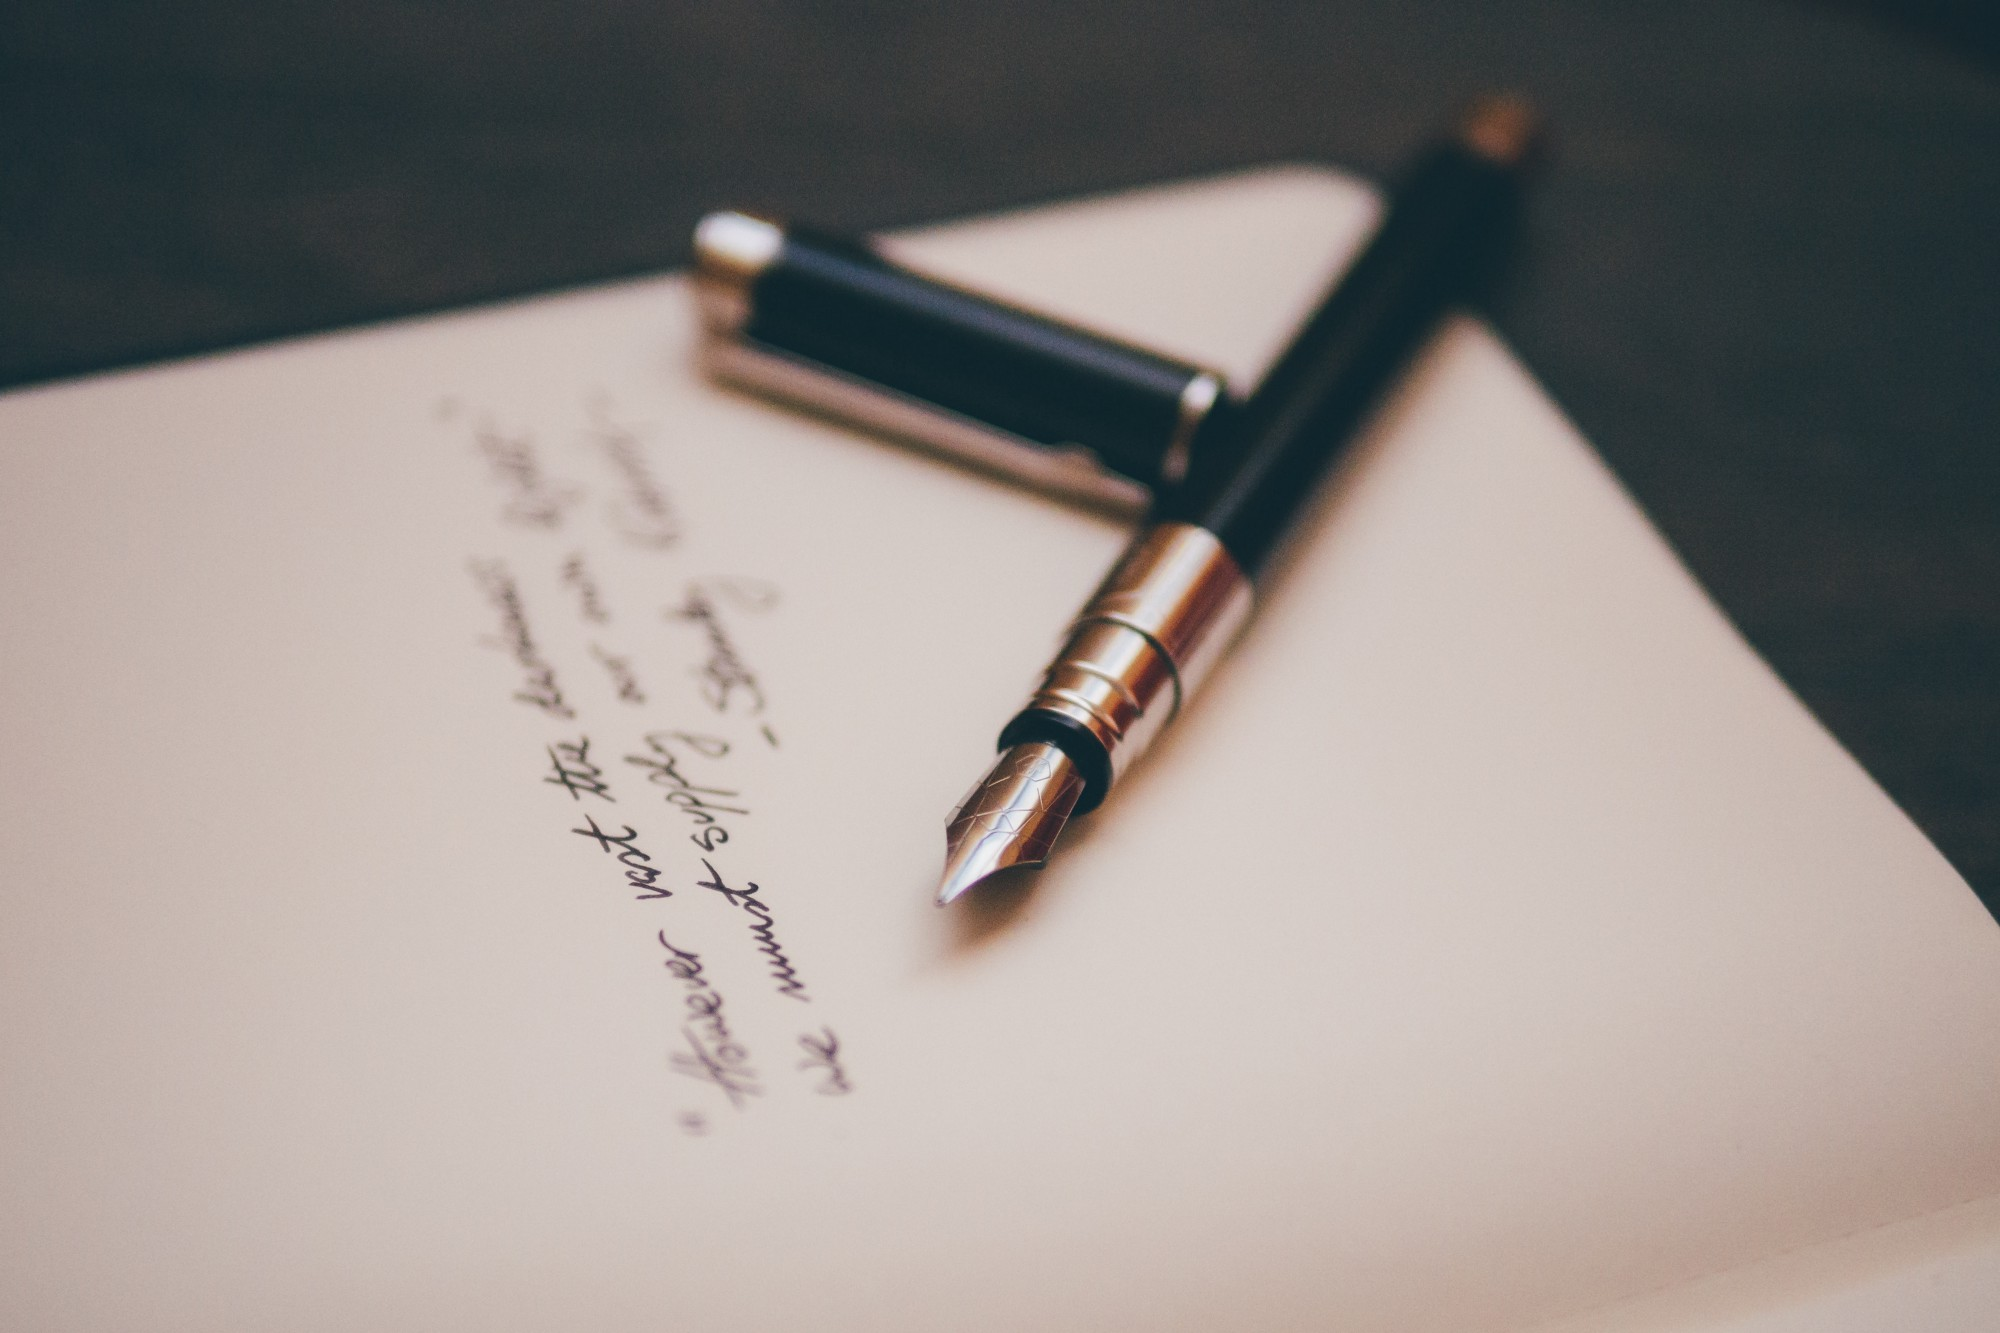 How exactly to Improve Handwriting Writing Practice Exercises for People